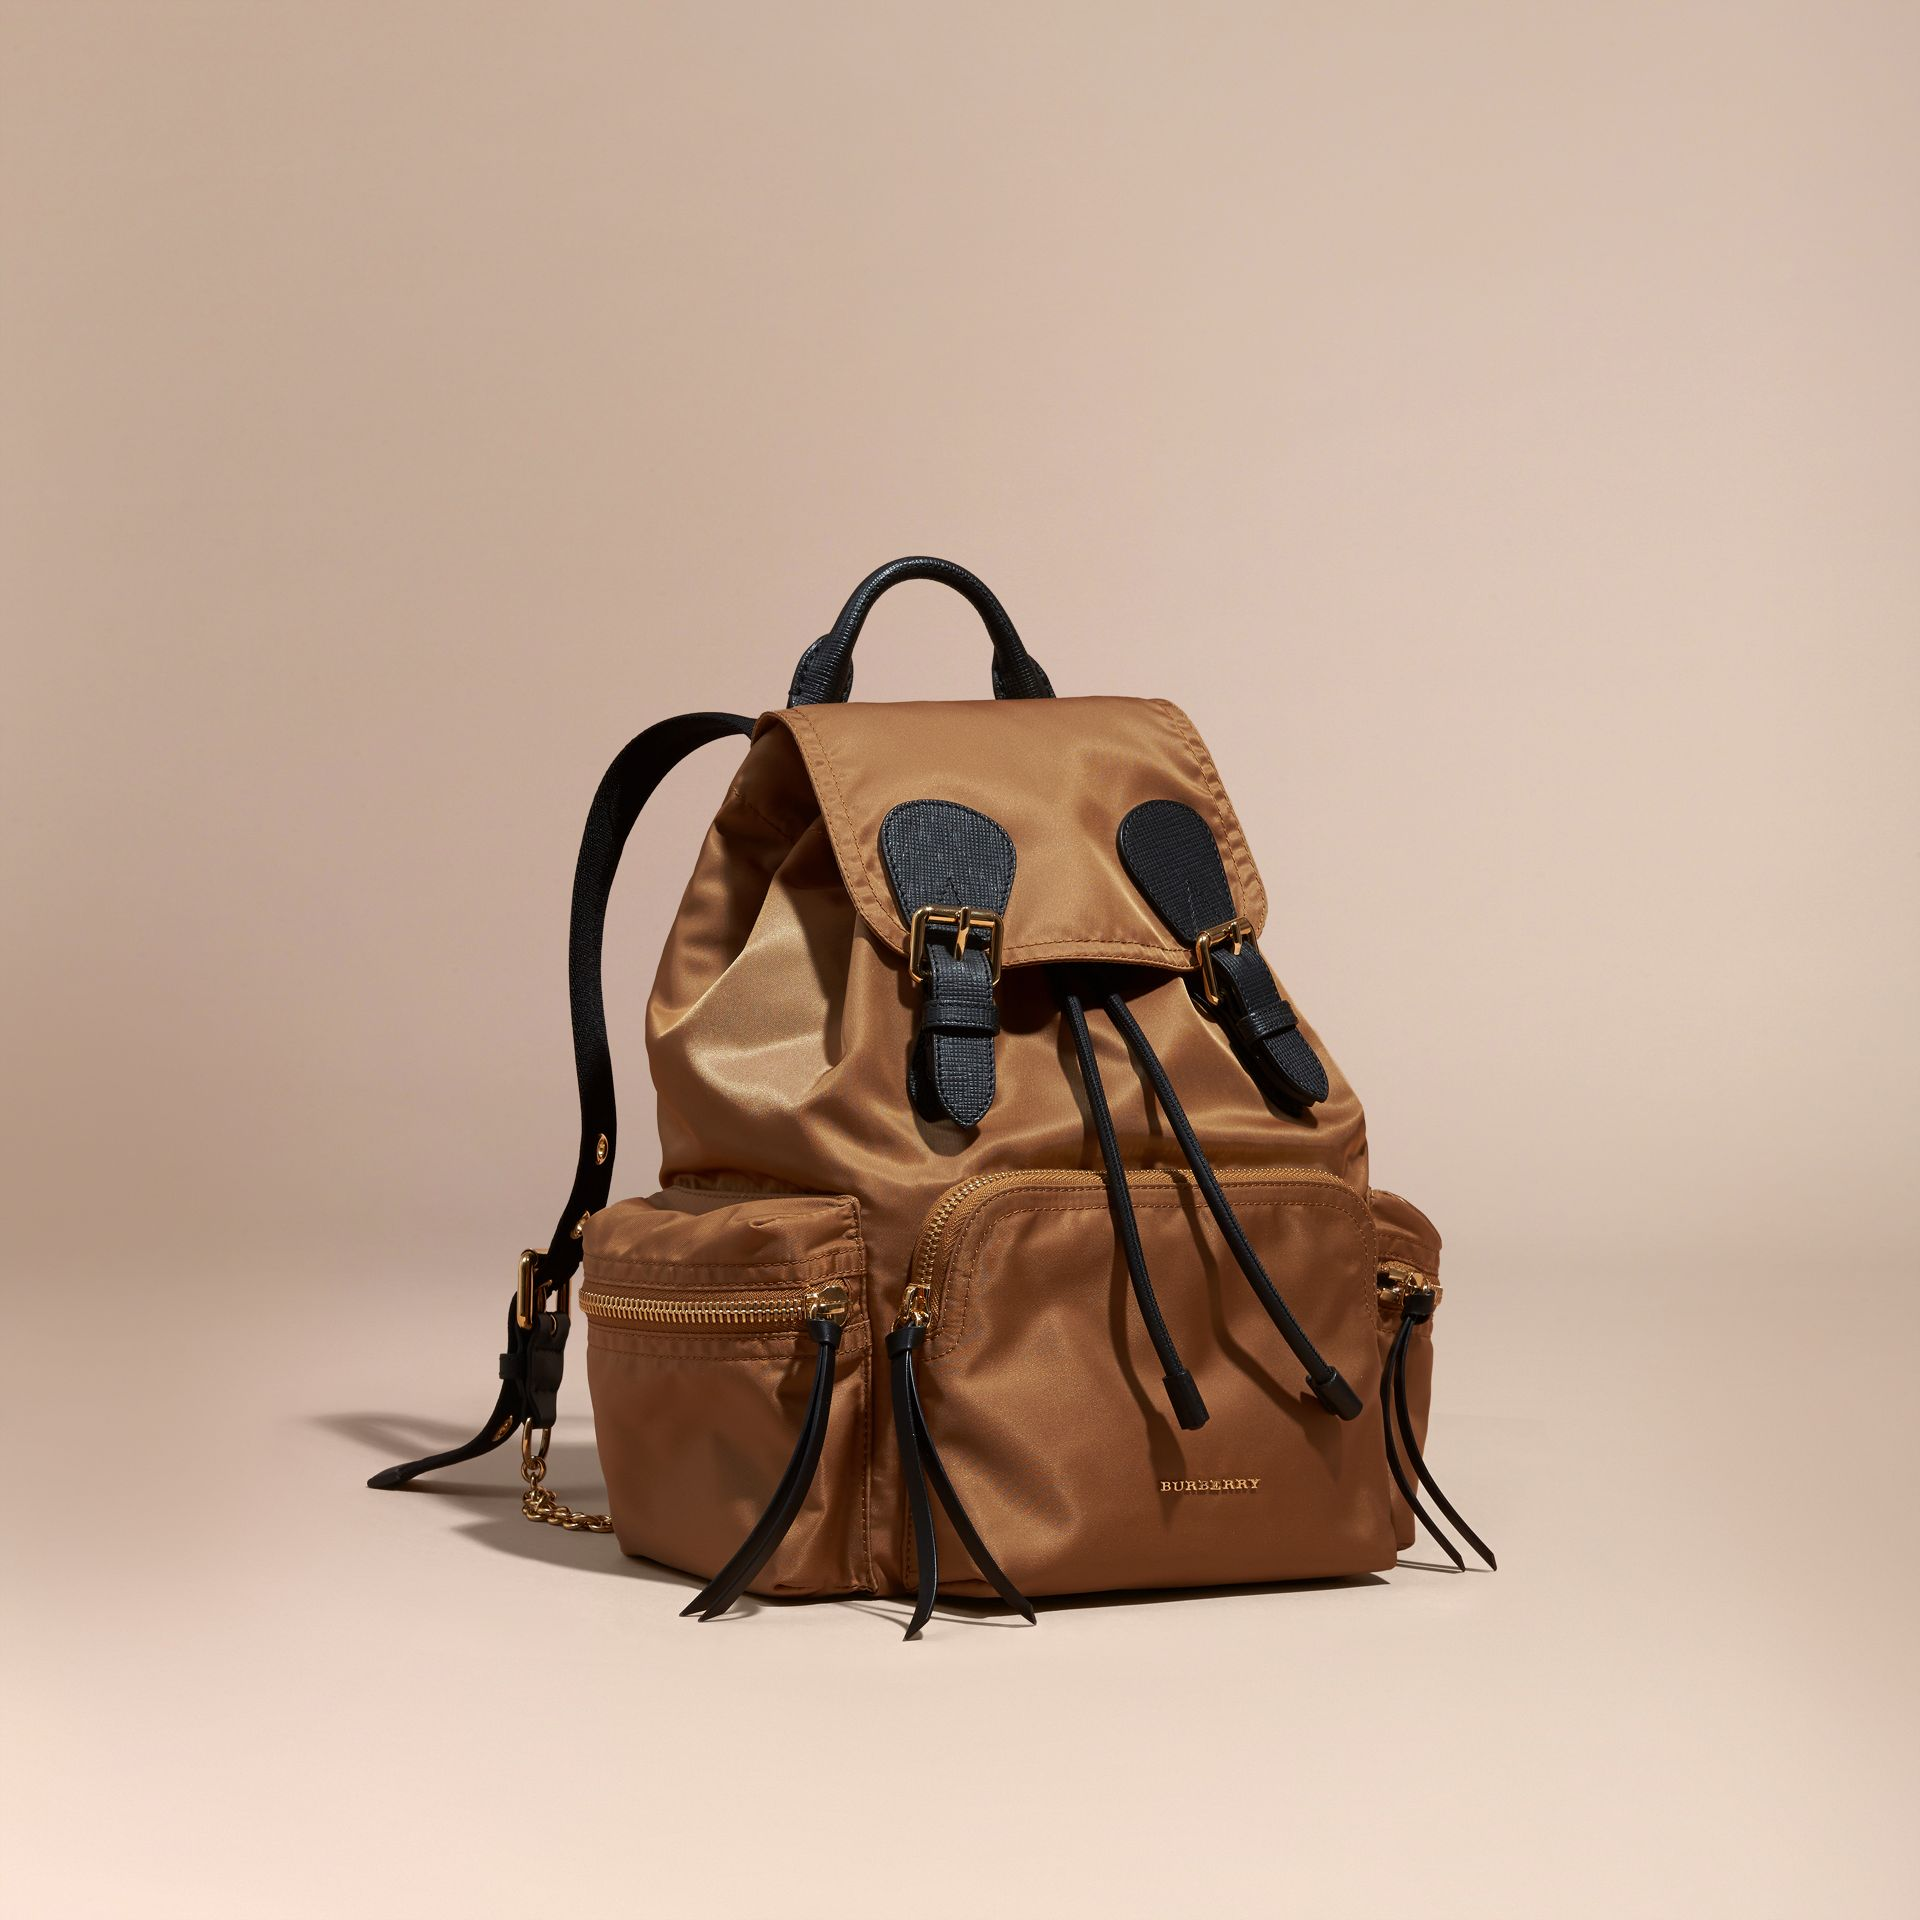 Lin clair Sac The Rucksack medium en nylon technique et cuir Lin Clair - photo de la galerie 1